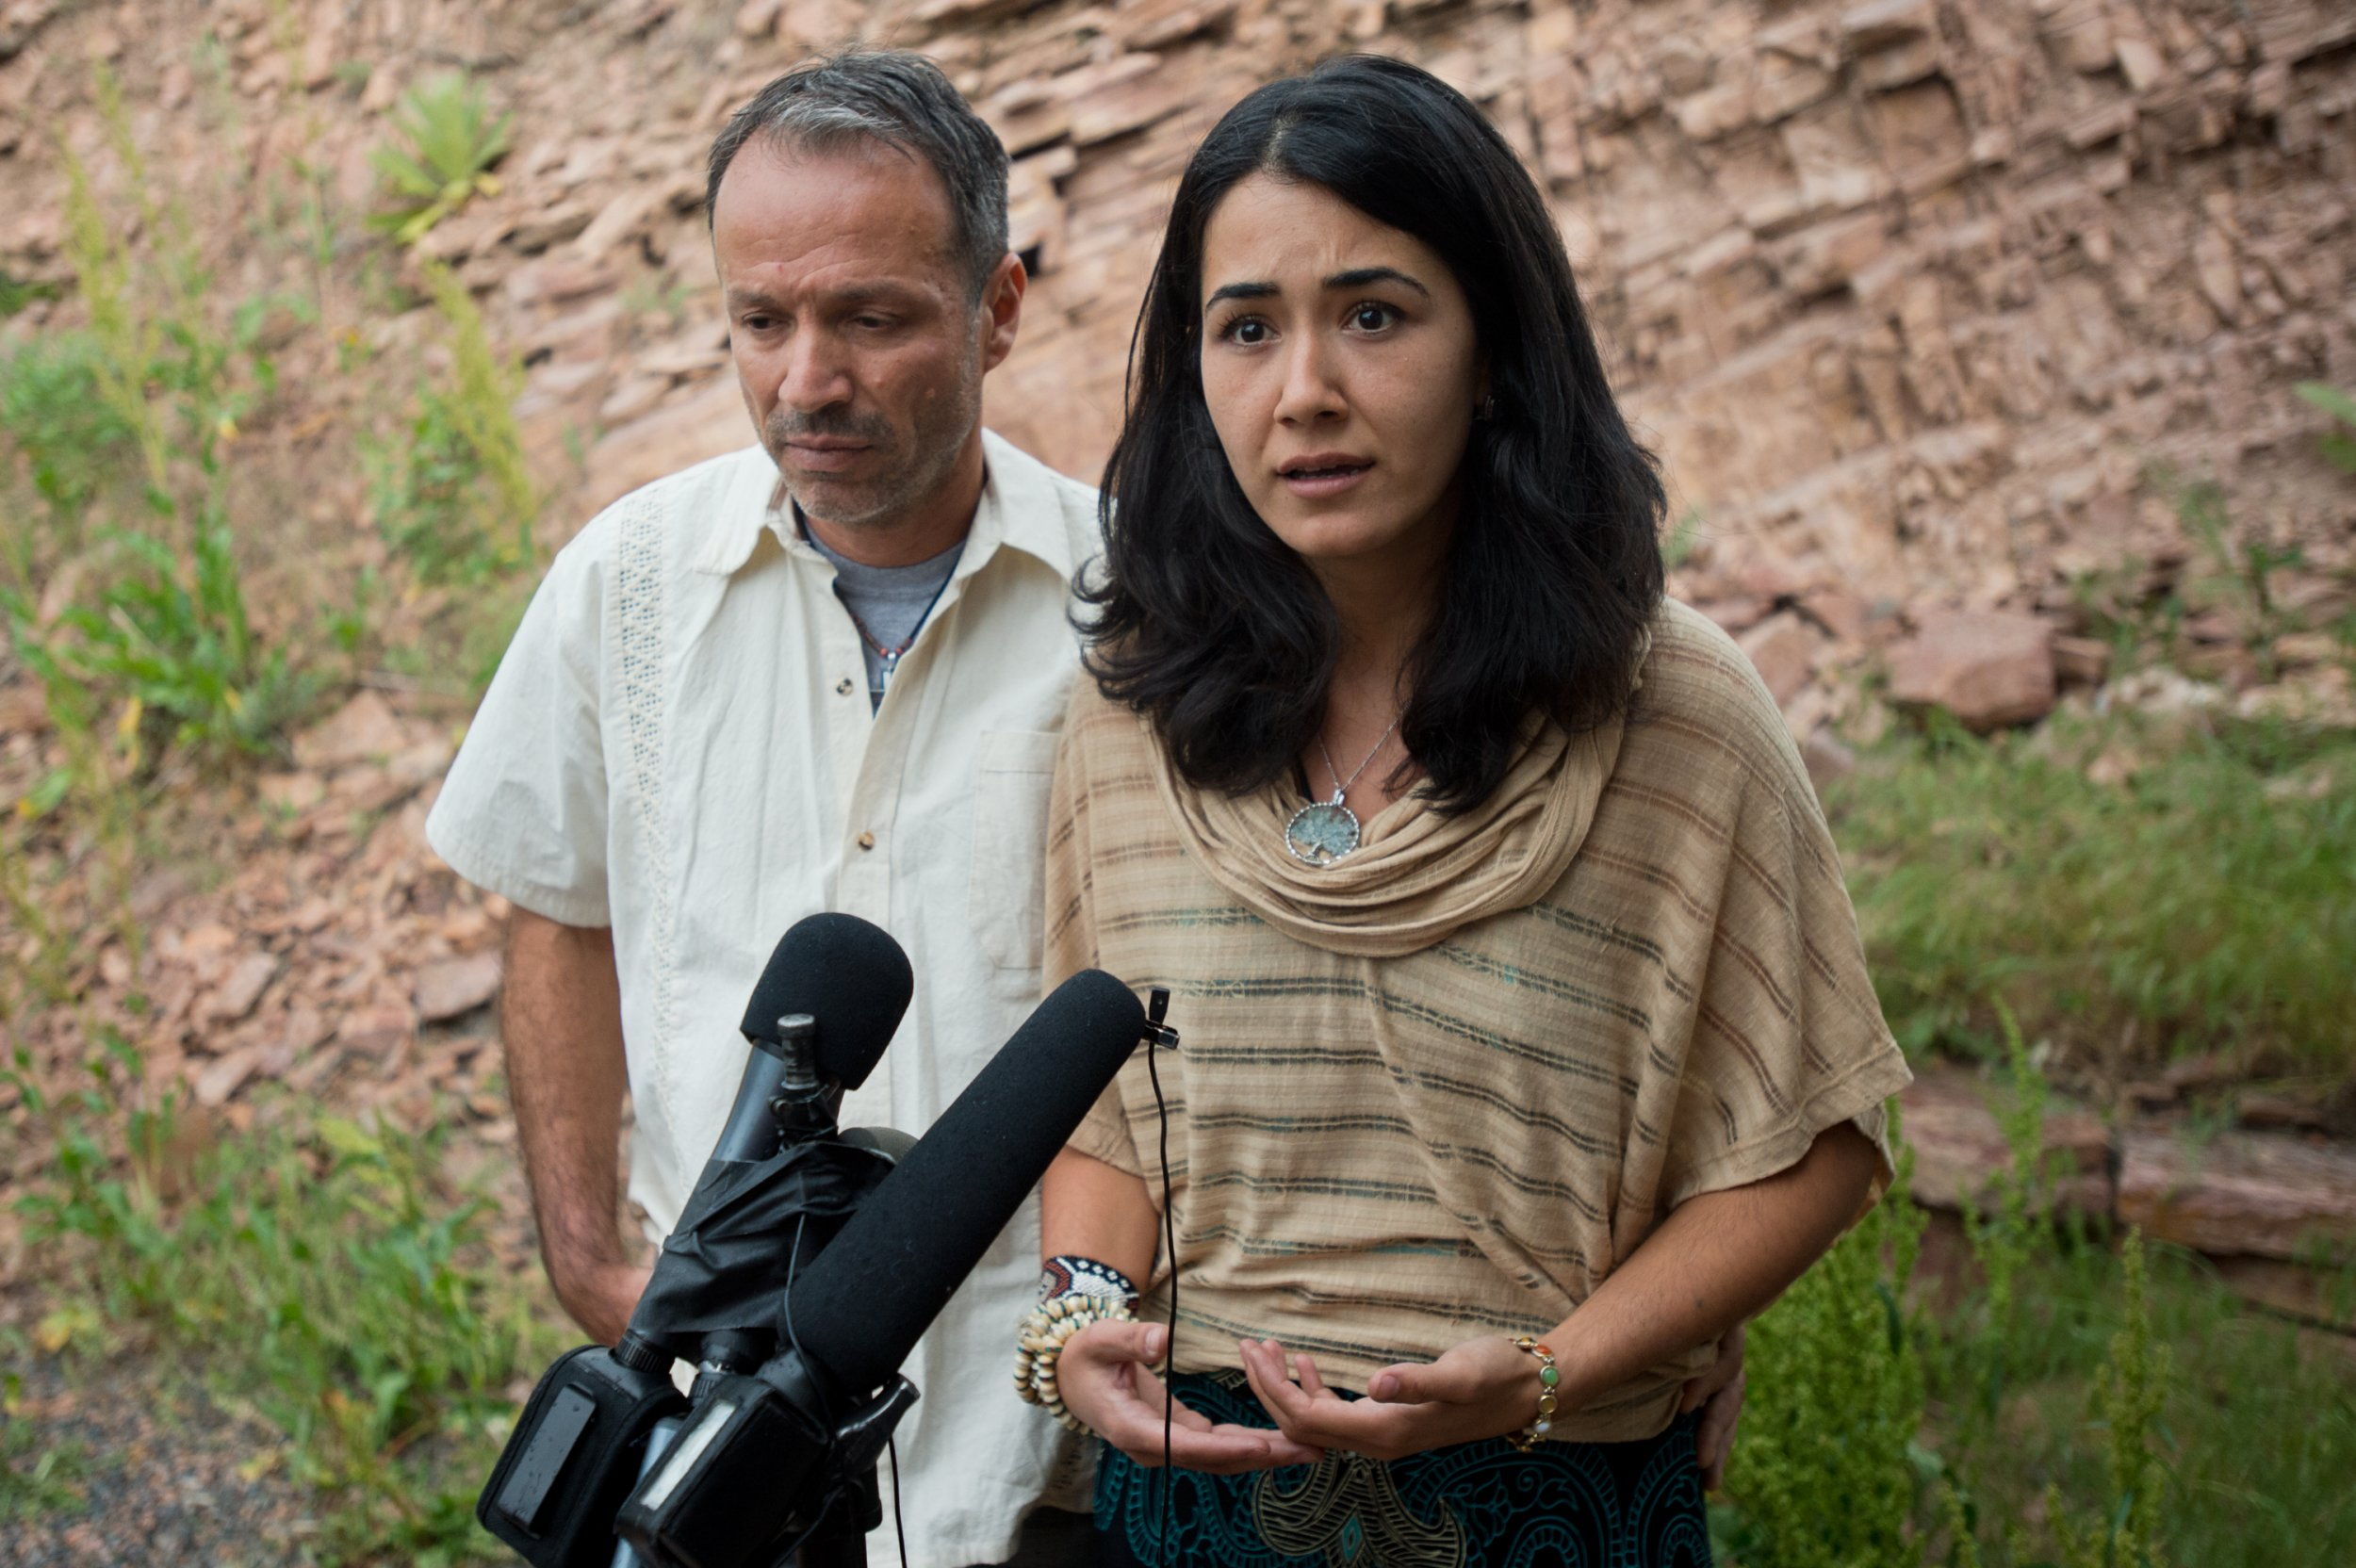 Sitora Yusufiy, the ex-wife of Orlando shooting suspect Omar Mateen, and her fiance Marcio Dias, give a statement to the media at their home outside Boulder, Colo., Sunday, June 12, 2016. (Autumn Parry/Boulder Daily Camera via AP)